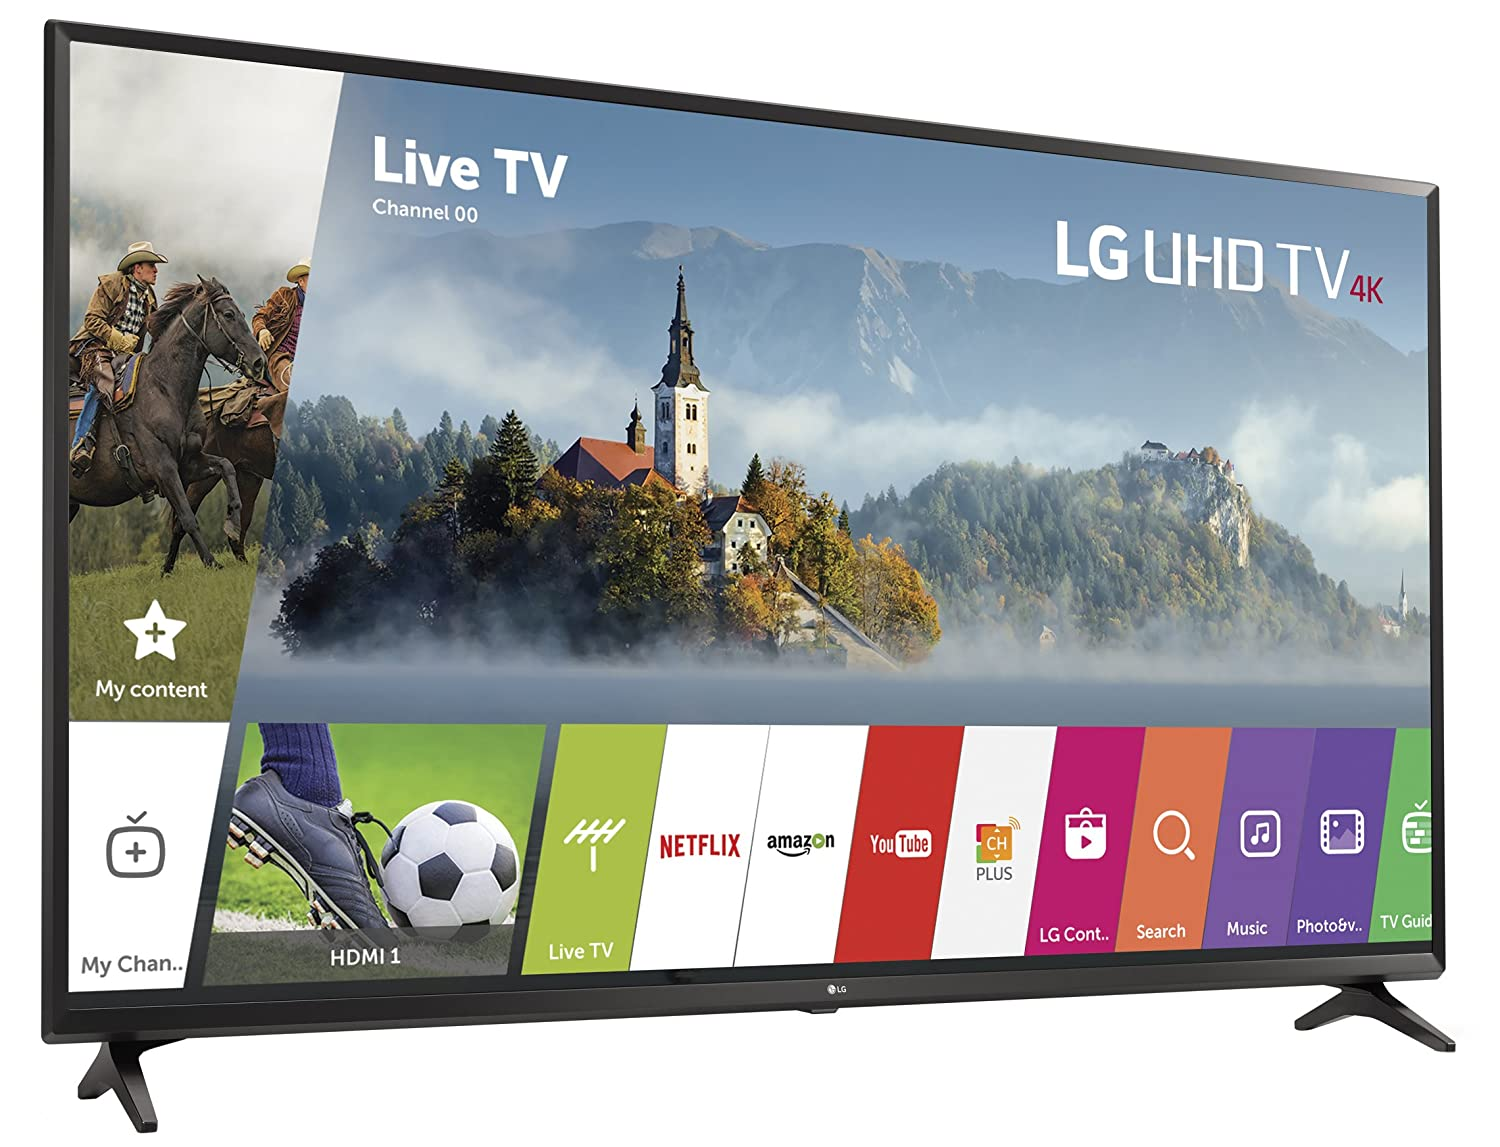 278b32392b2 Amazon.com  LG Electronics 43UJ6300 43-Inch 4K Ultra HD Smart LED TV (2017  Model)  Electronics